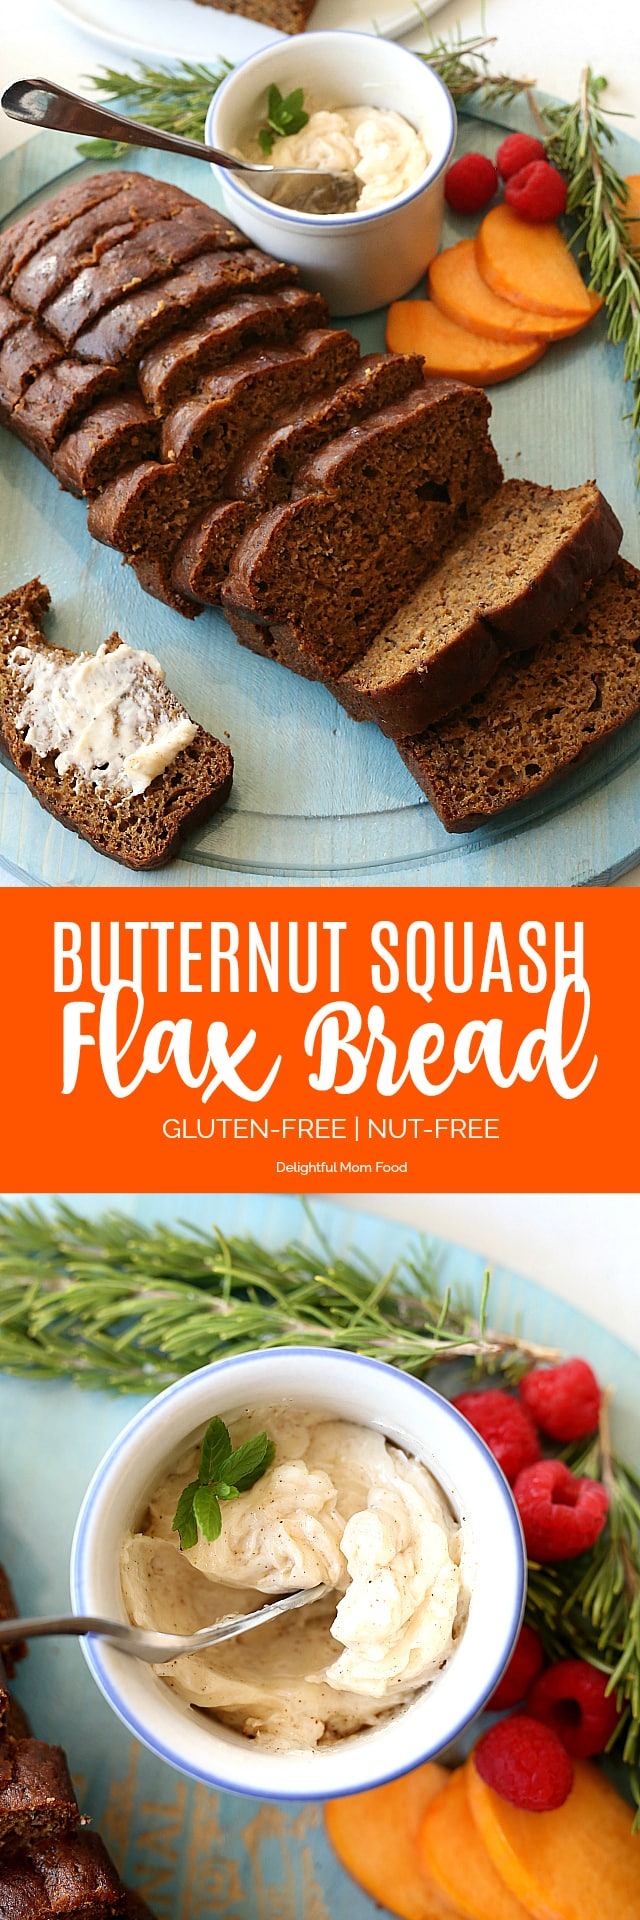 Butternut squash flax bread is so warm, moist and delicious without any dairy or added oils! A new healthy holiday favorite bread loaf to bring to the table!